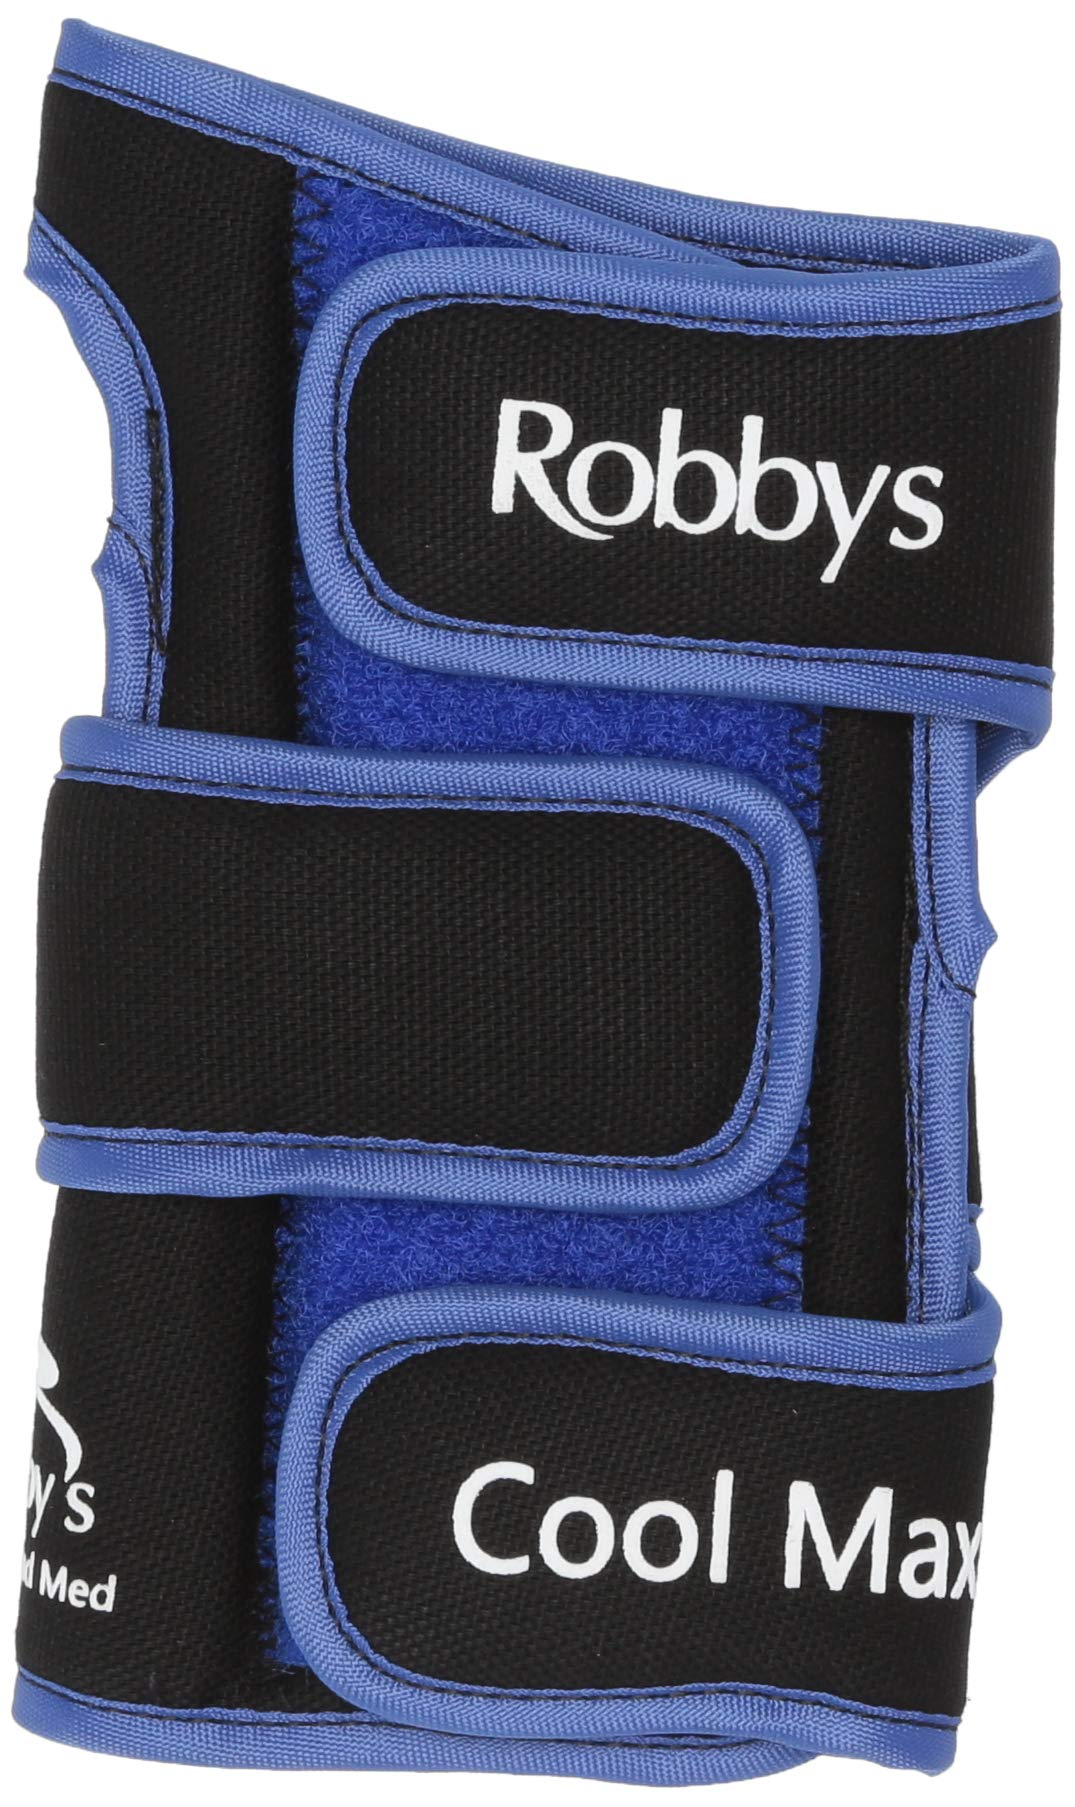 Robby's Coolmax Original Right Wrist Support, Black/Blue, Medium by Robby's